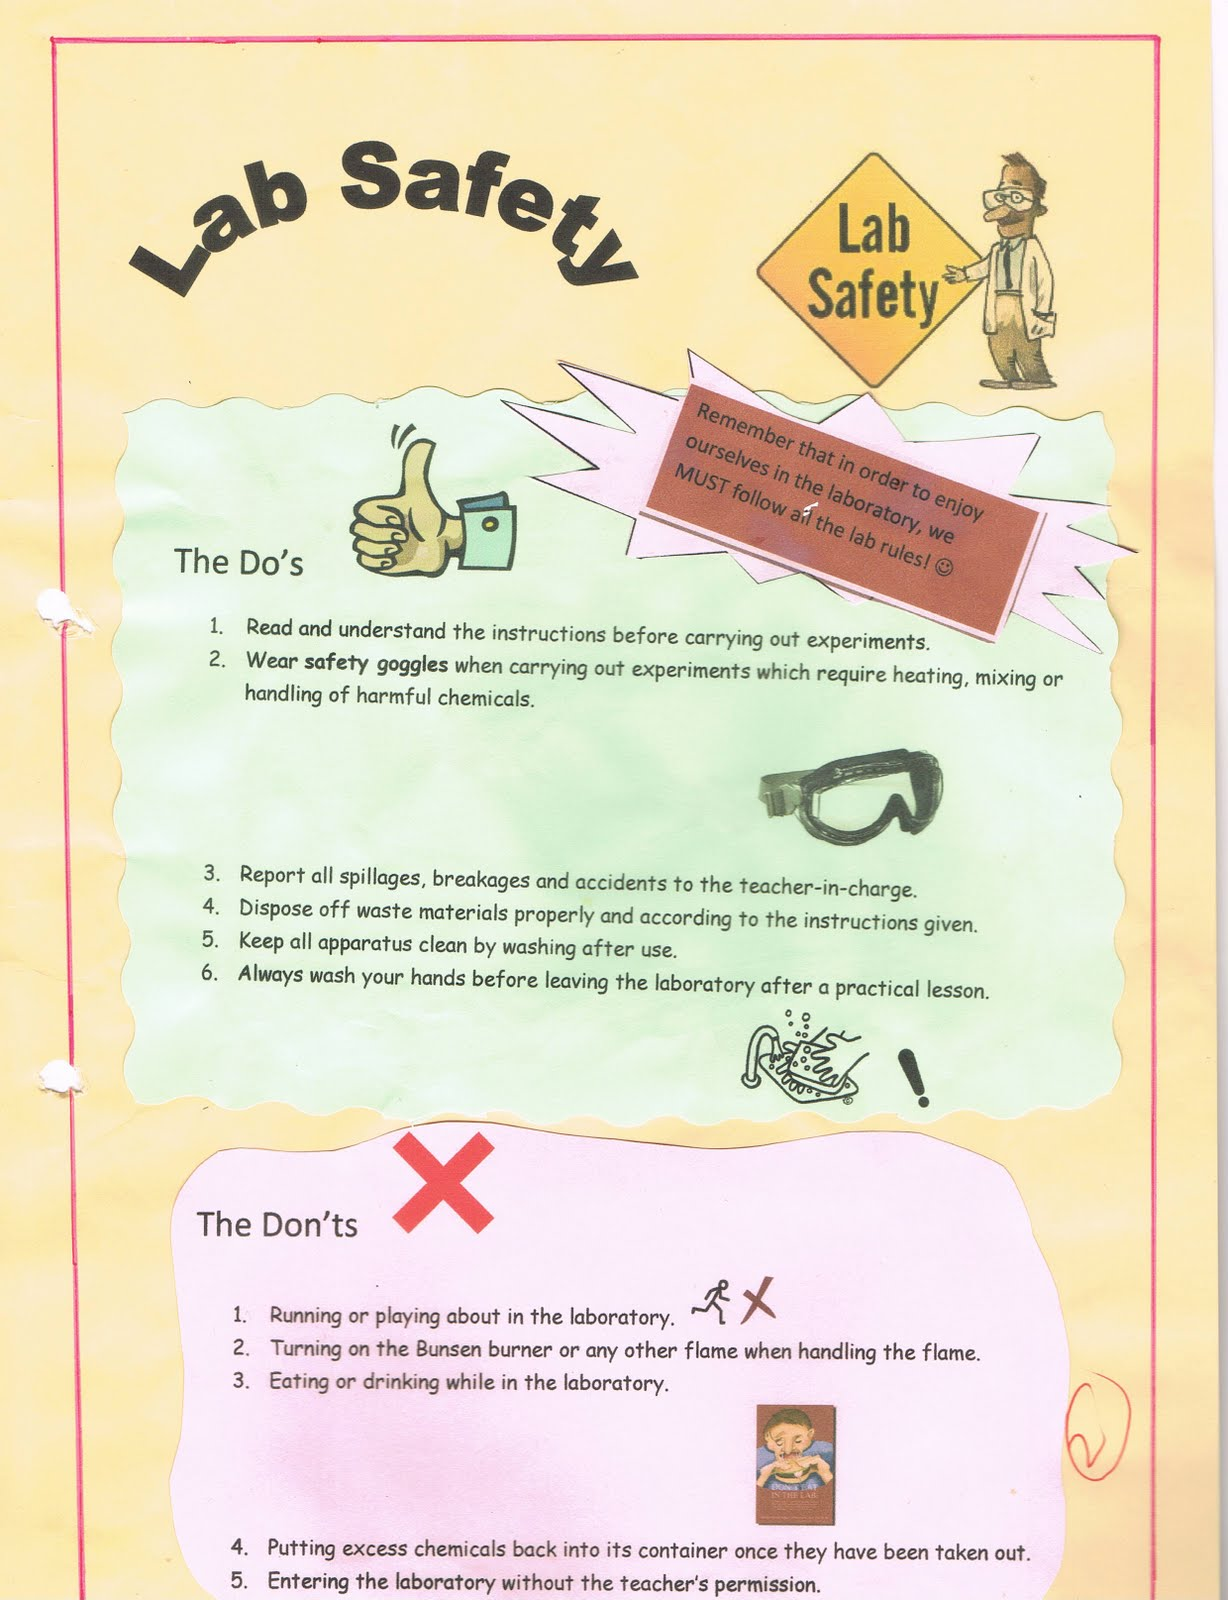 Safety Lab Poster http://1p204eport-folio.blogspot.com/p/personal-work-samples.html